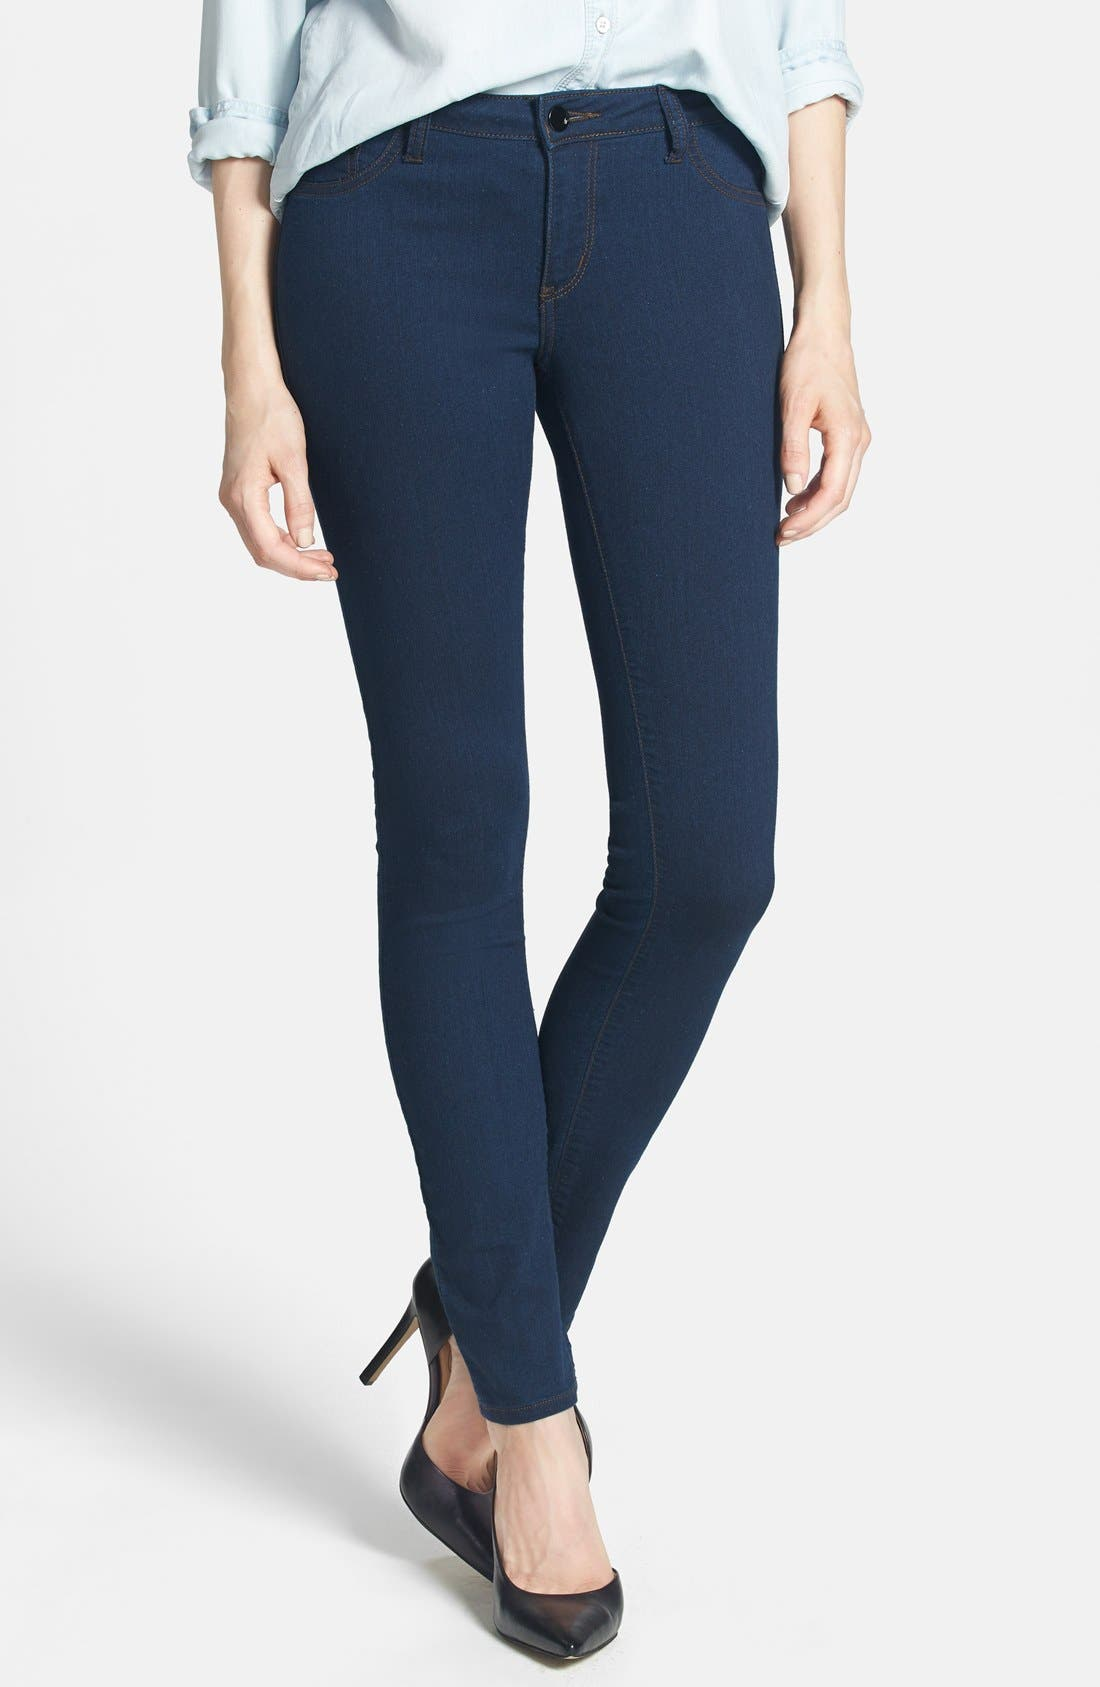 Main Image - !iT Collective 'Lola' Stretch Ultra Skinny Jeans (Regular & Petite)